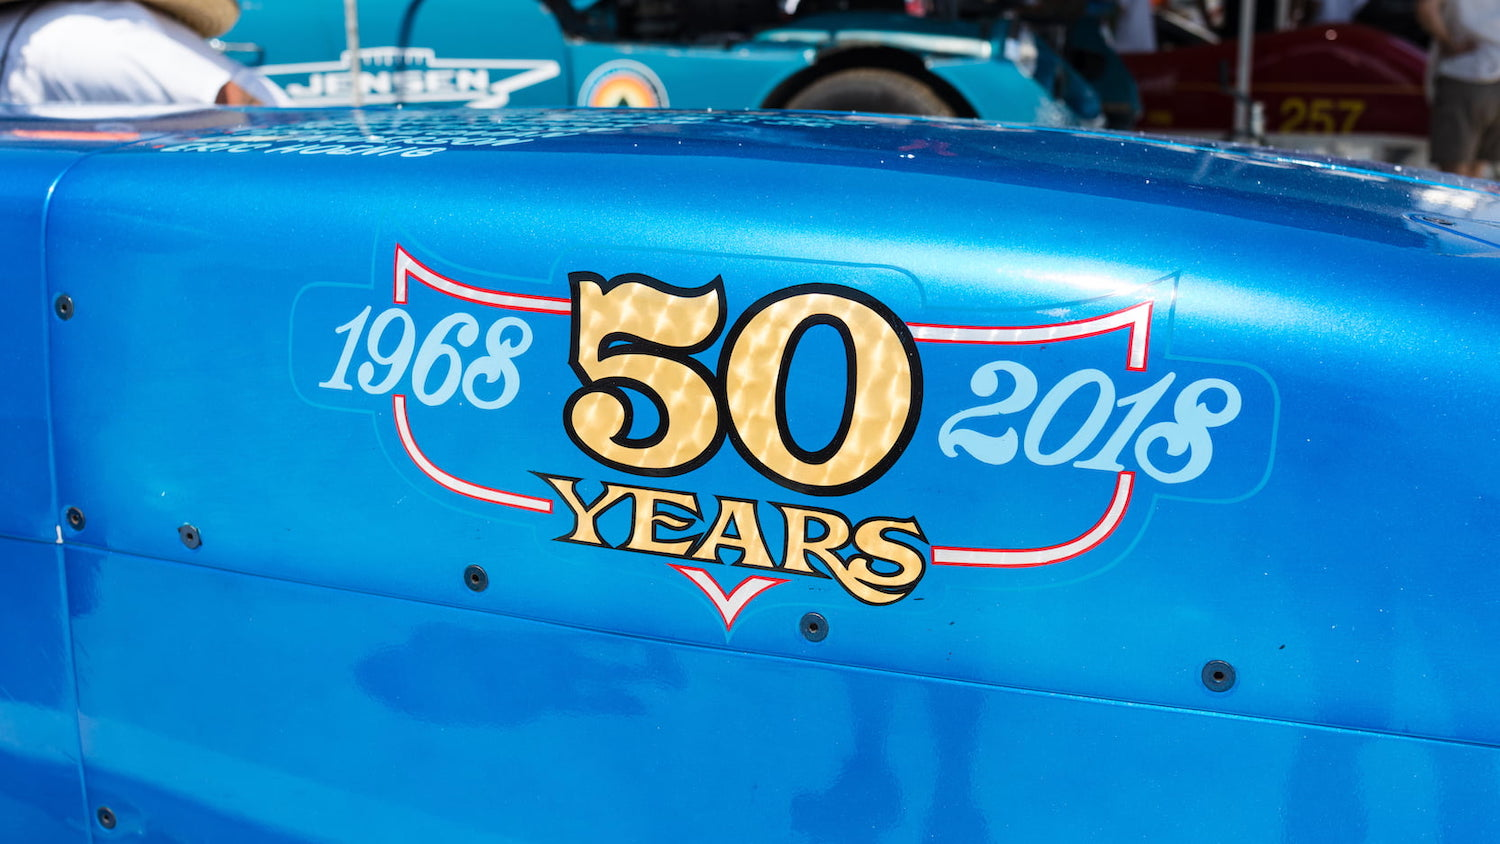 50 years decal close-up